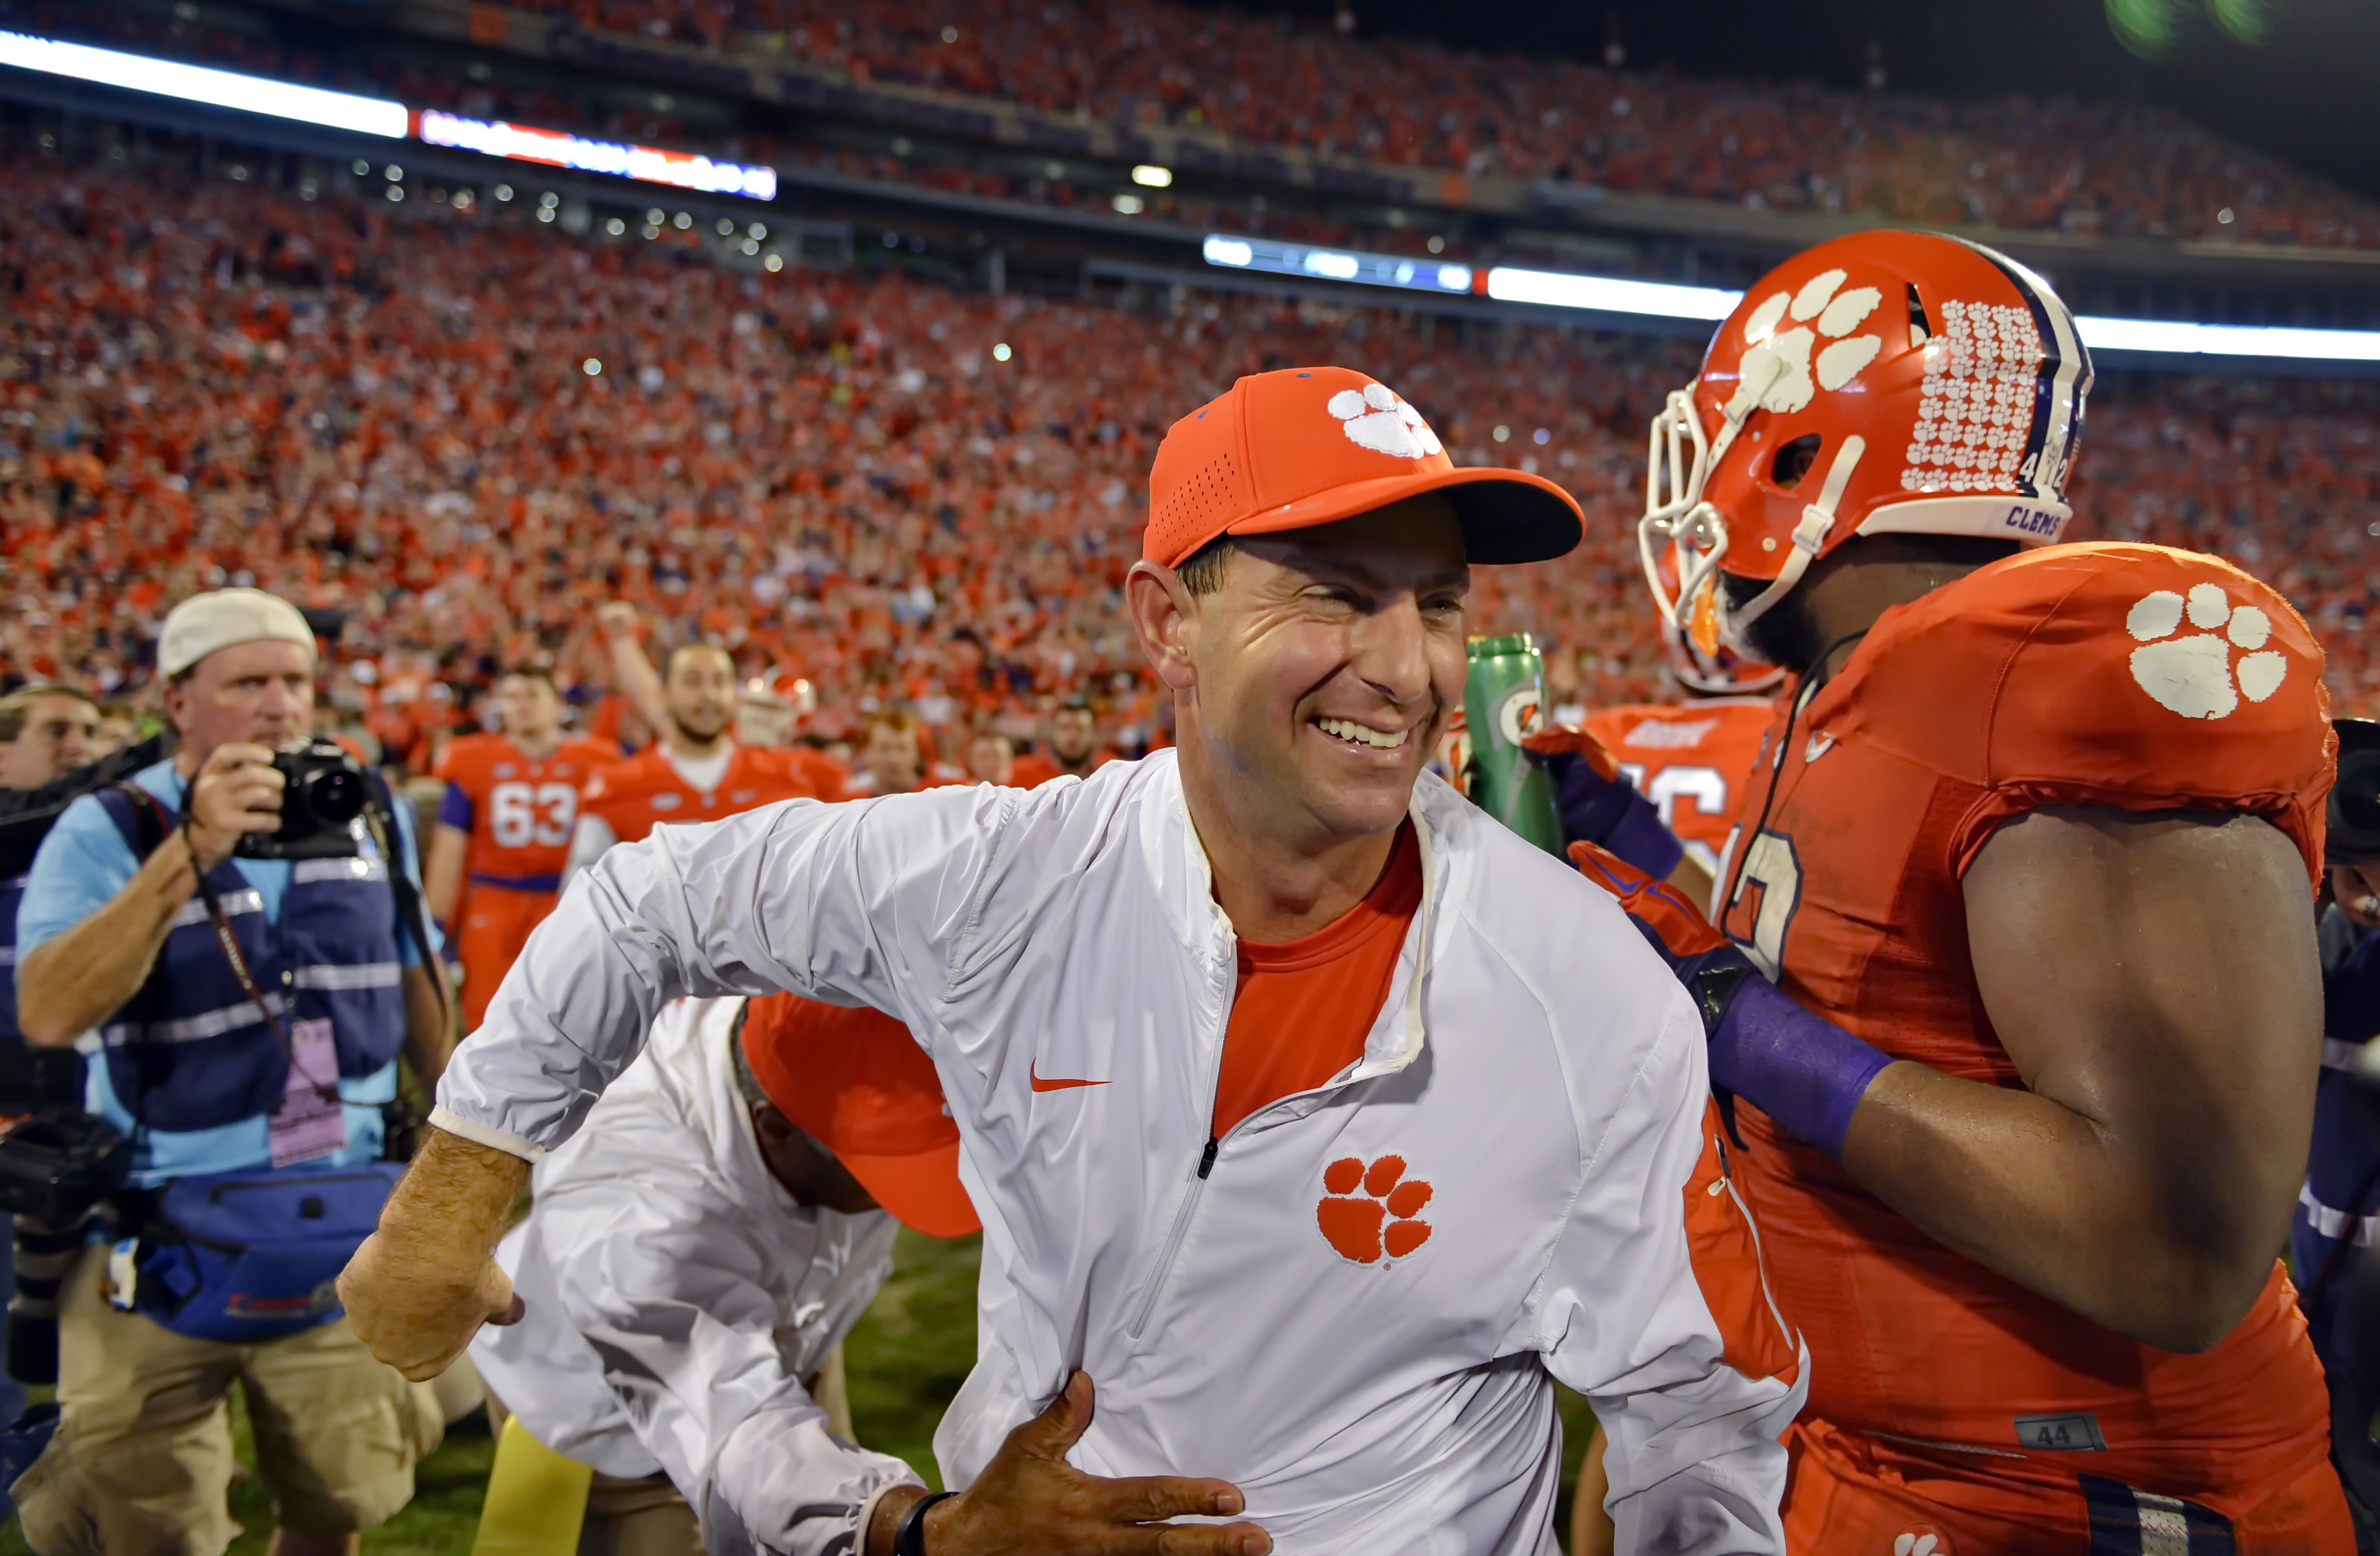 Clemson head coach Dabo Swinney celebrates after their 23-17 win over Florida State in an NCAA college football game, Saturday, Nov. 7, 2015,  in Clemson,  S.C. (AP Photo/Richard Shiro)